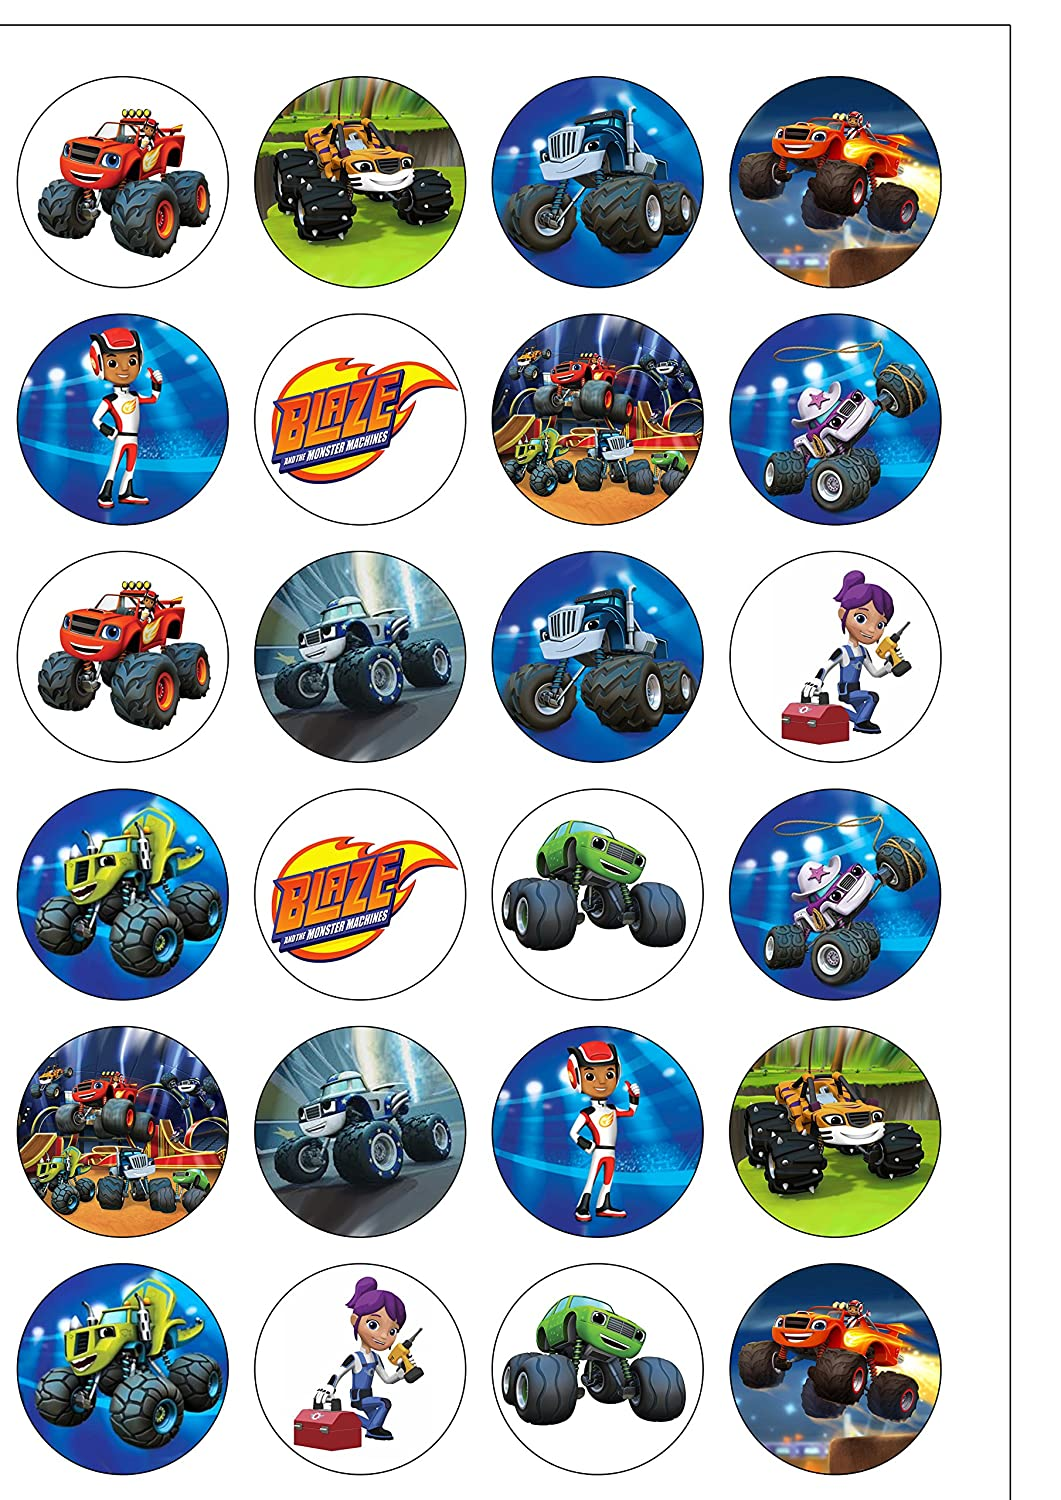 24 Precut 40mm Round Blaze and The Monster Machines Edible Wafer Paper Cake Toppers Orange Trading